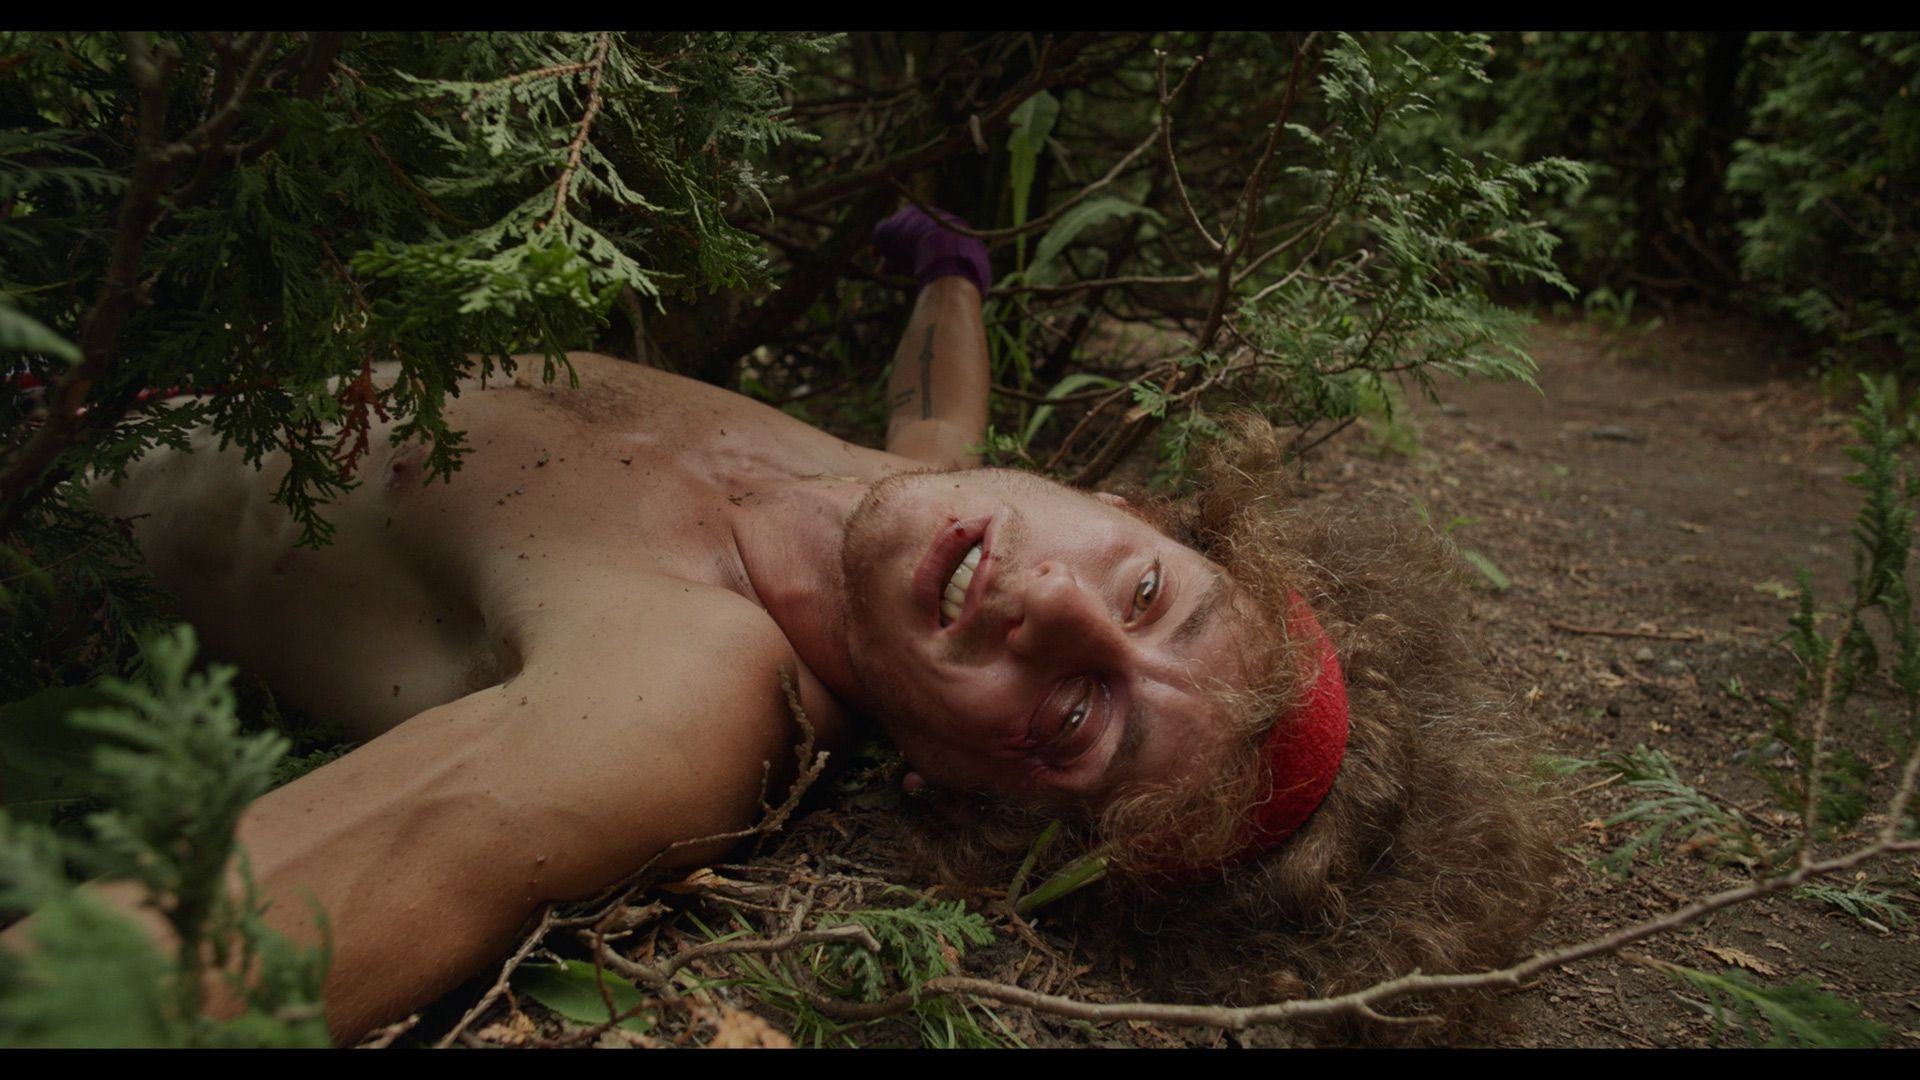 actor beaten up on the ground half his body under a bush looking directly at camera for Alaclair Ensemble hip hop collective music video Felix filmed by Les Gamins featuring Souldia